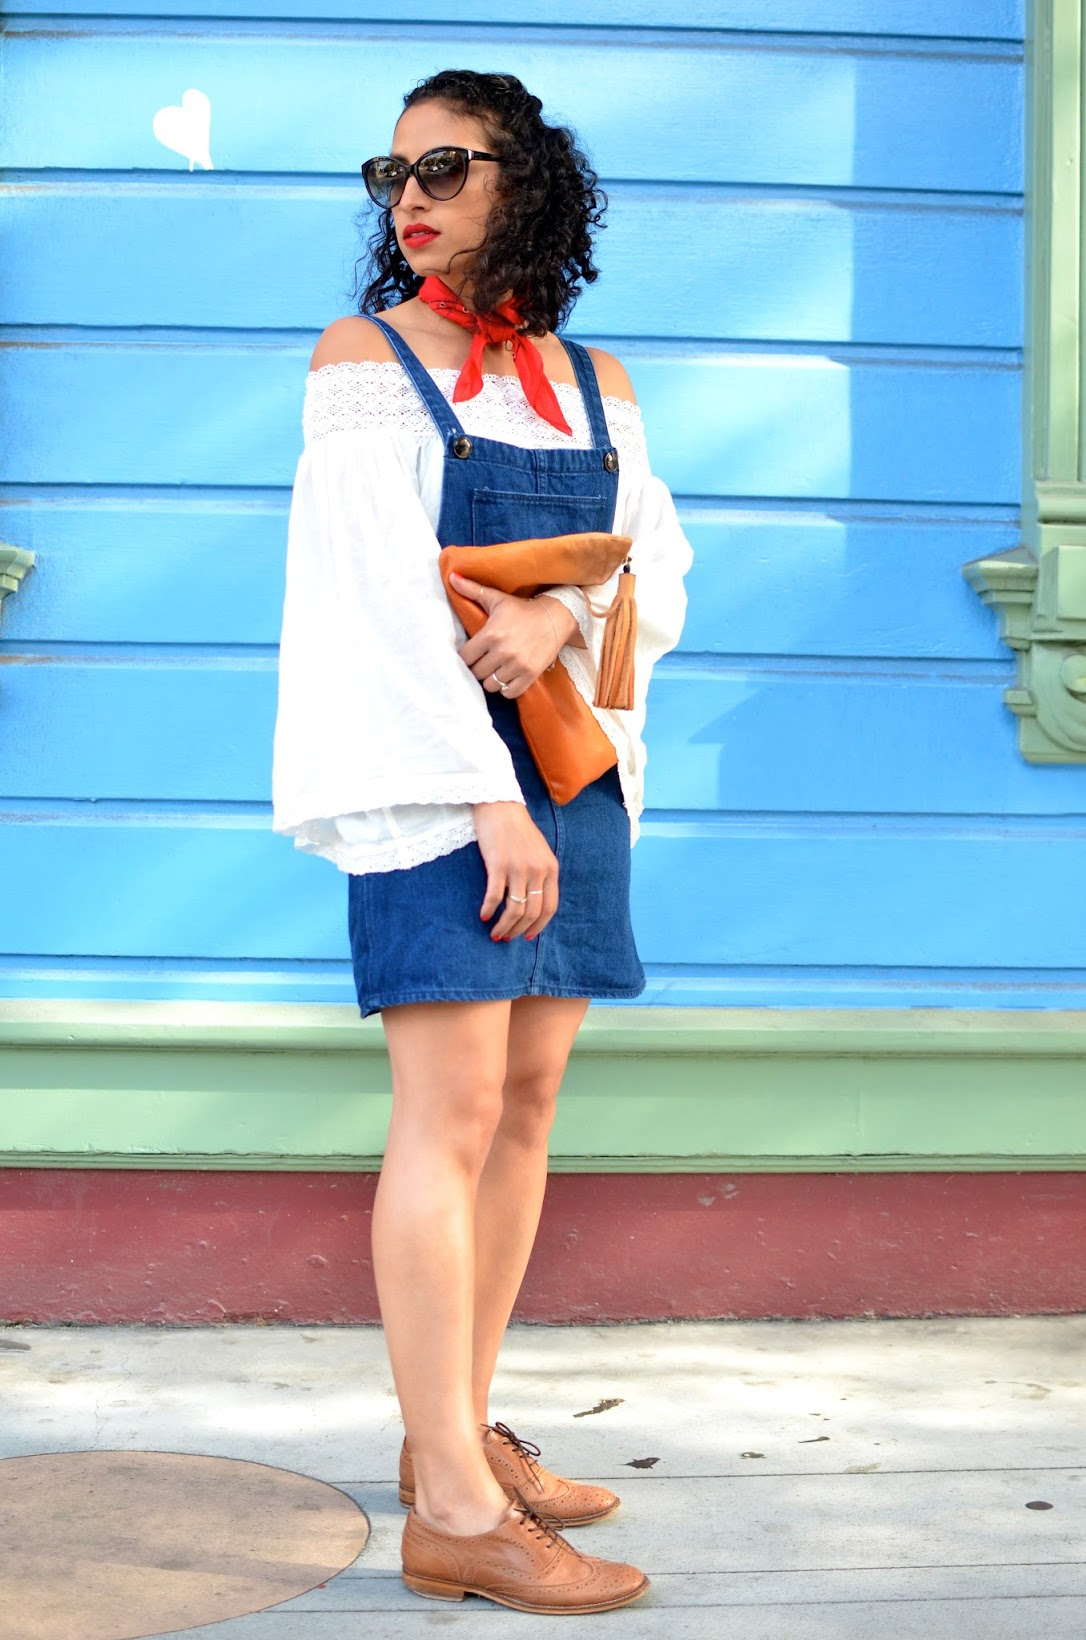 pride weekend, sf street style, skirt overalls, red lips, Stila beso lipstick, oxfords, off the shoulder top, summer style, red neck bandana, red bandana, neck scarf bandana